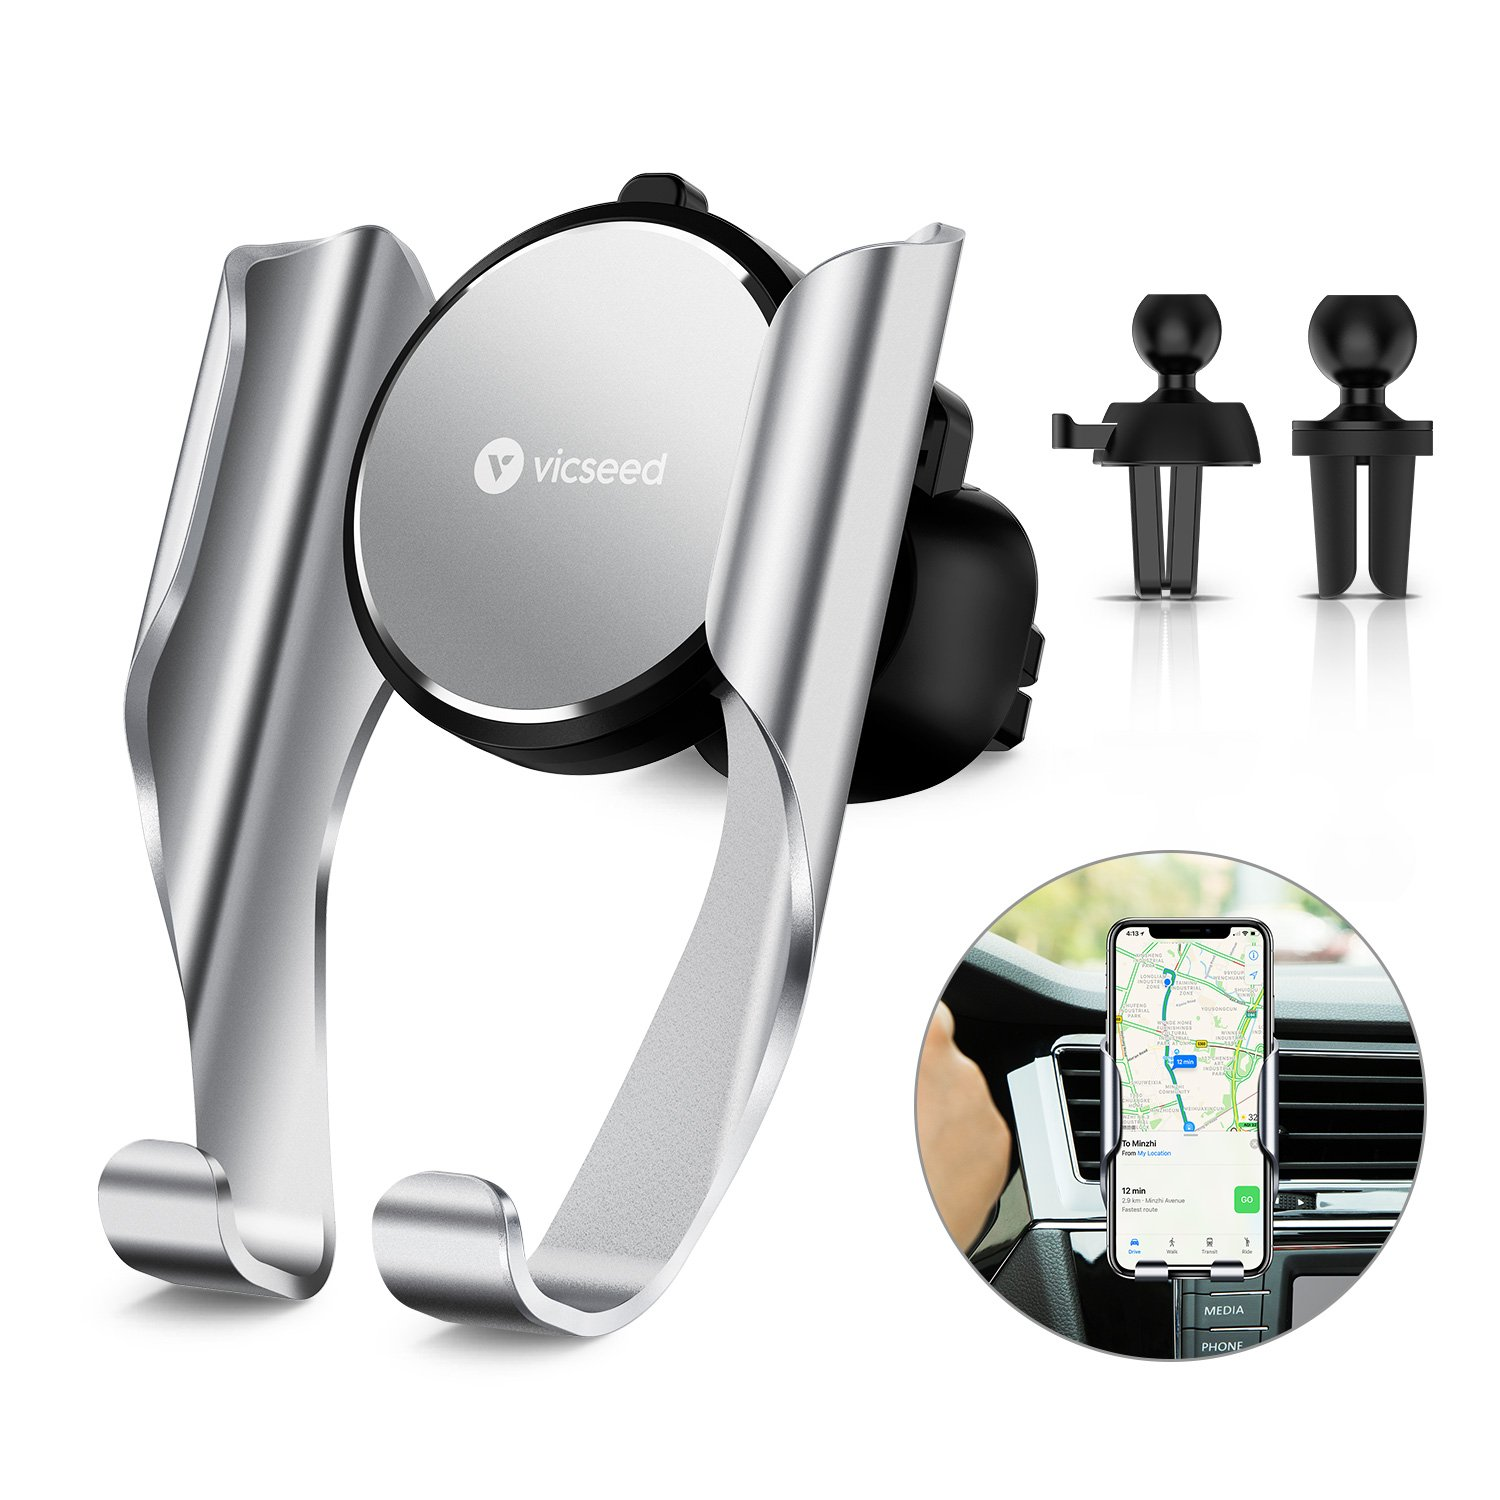 Car Phone Mount,VICSEED Air Vent Cell Phone Holder Ultra Stable Car Cradle 4.5''-6'' Mobile Phones Compatible iPhone X/8/8 Plus/7/7 Plus Samsung S9/S8/S7/S7 Edge LG etc Memory Feature